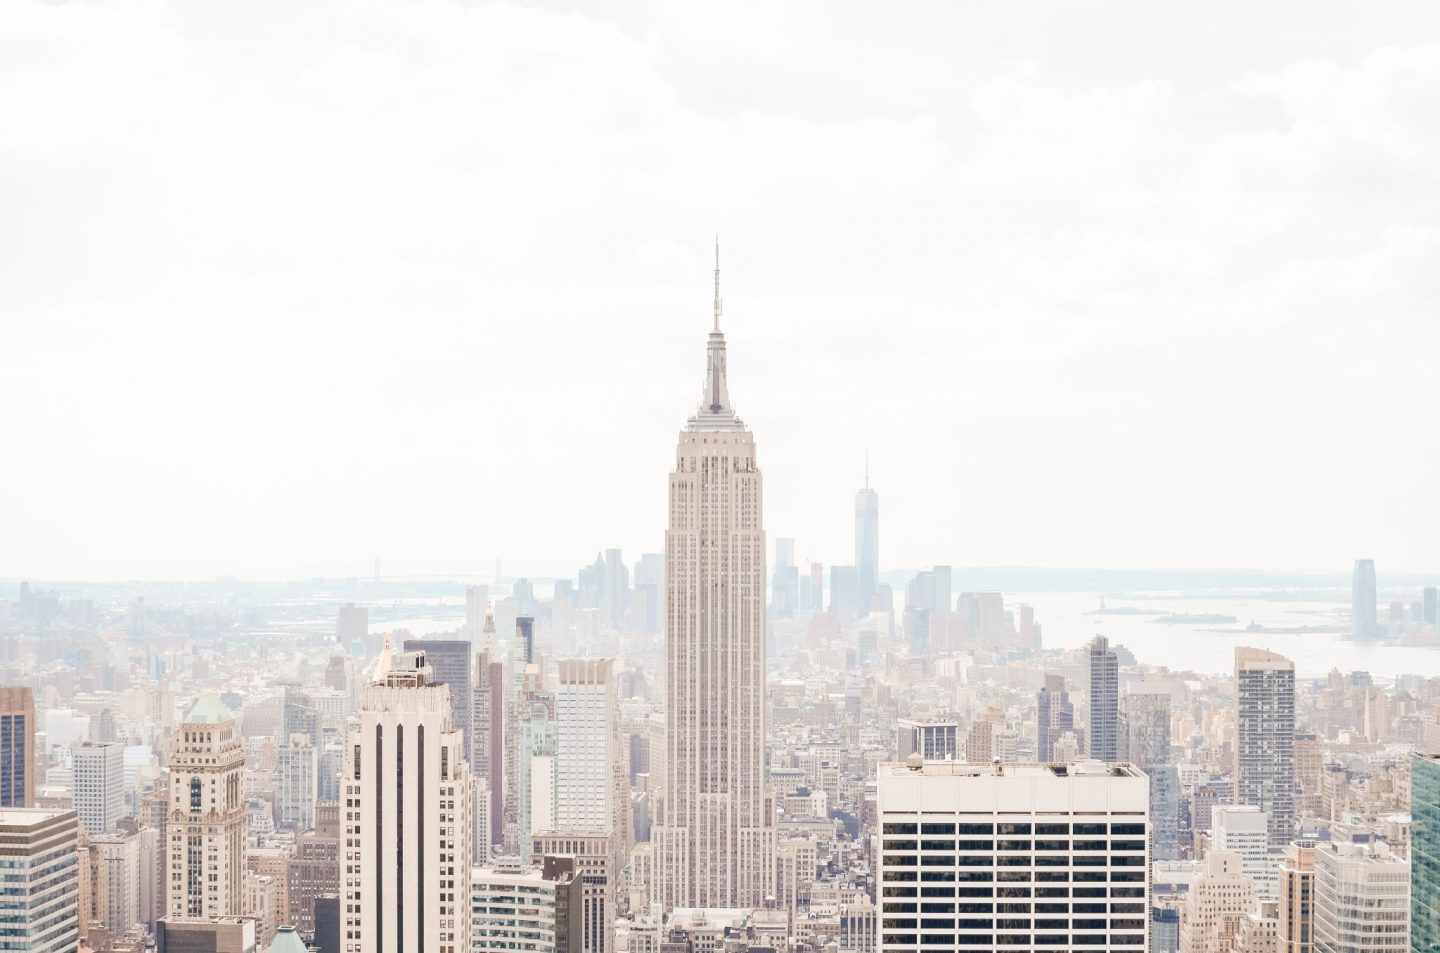 NYC, new york city, reasons to visit nyc, why i love nyc, travel, dizzybrunette3 nyc